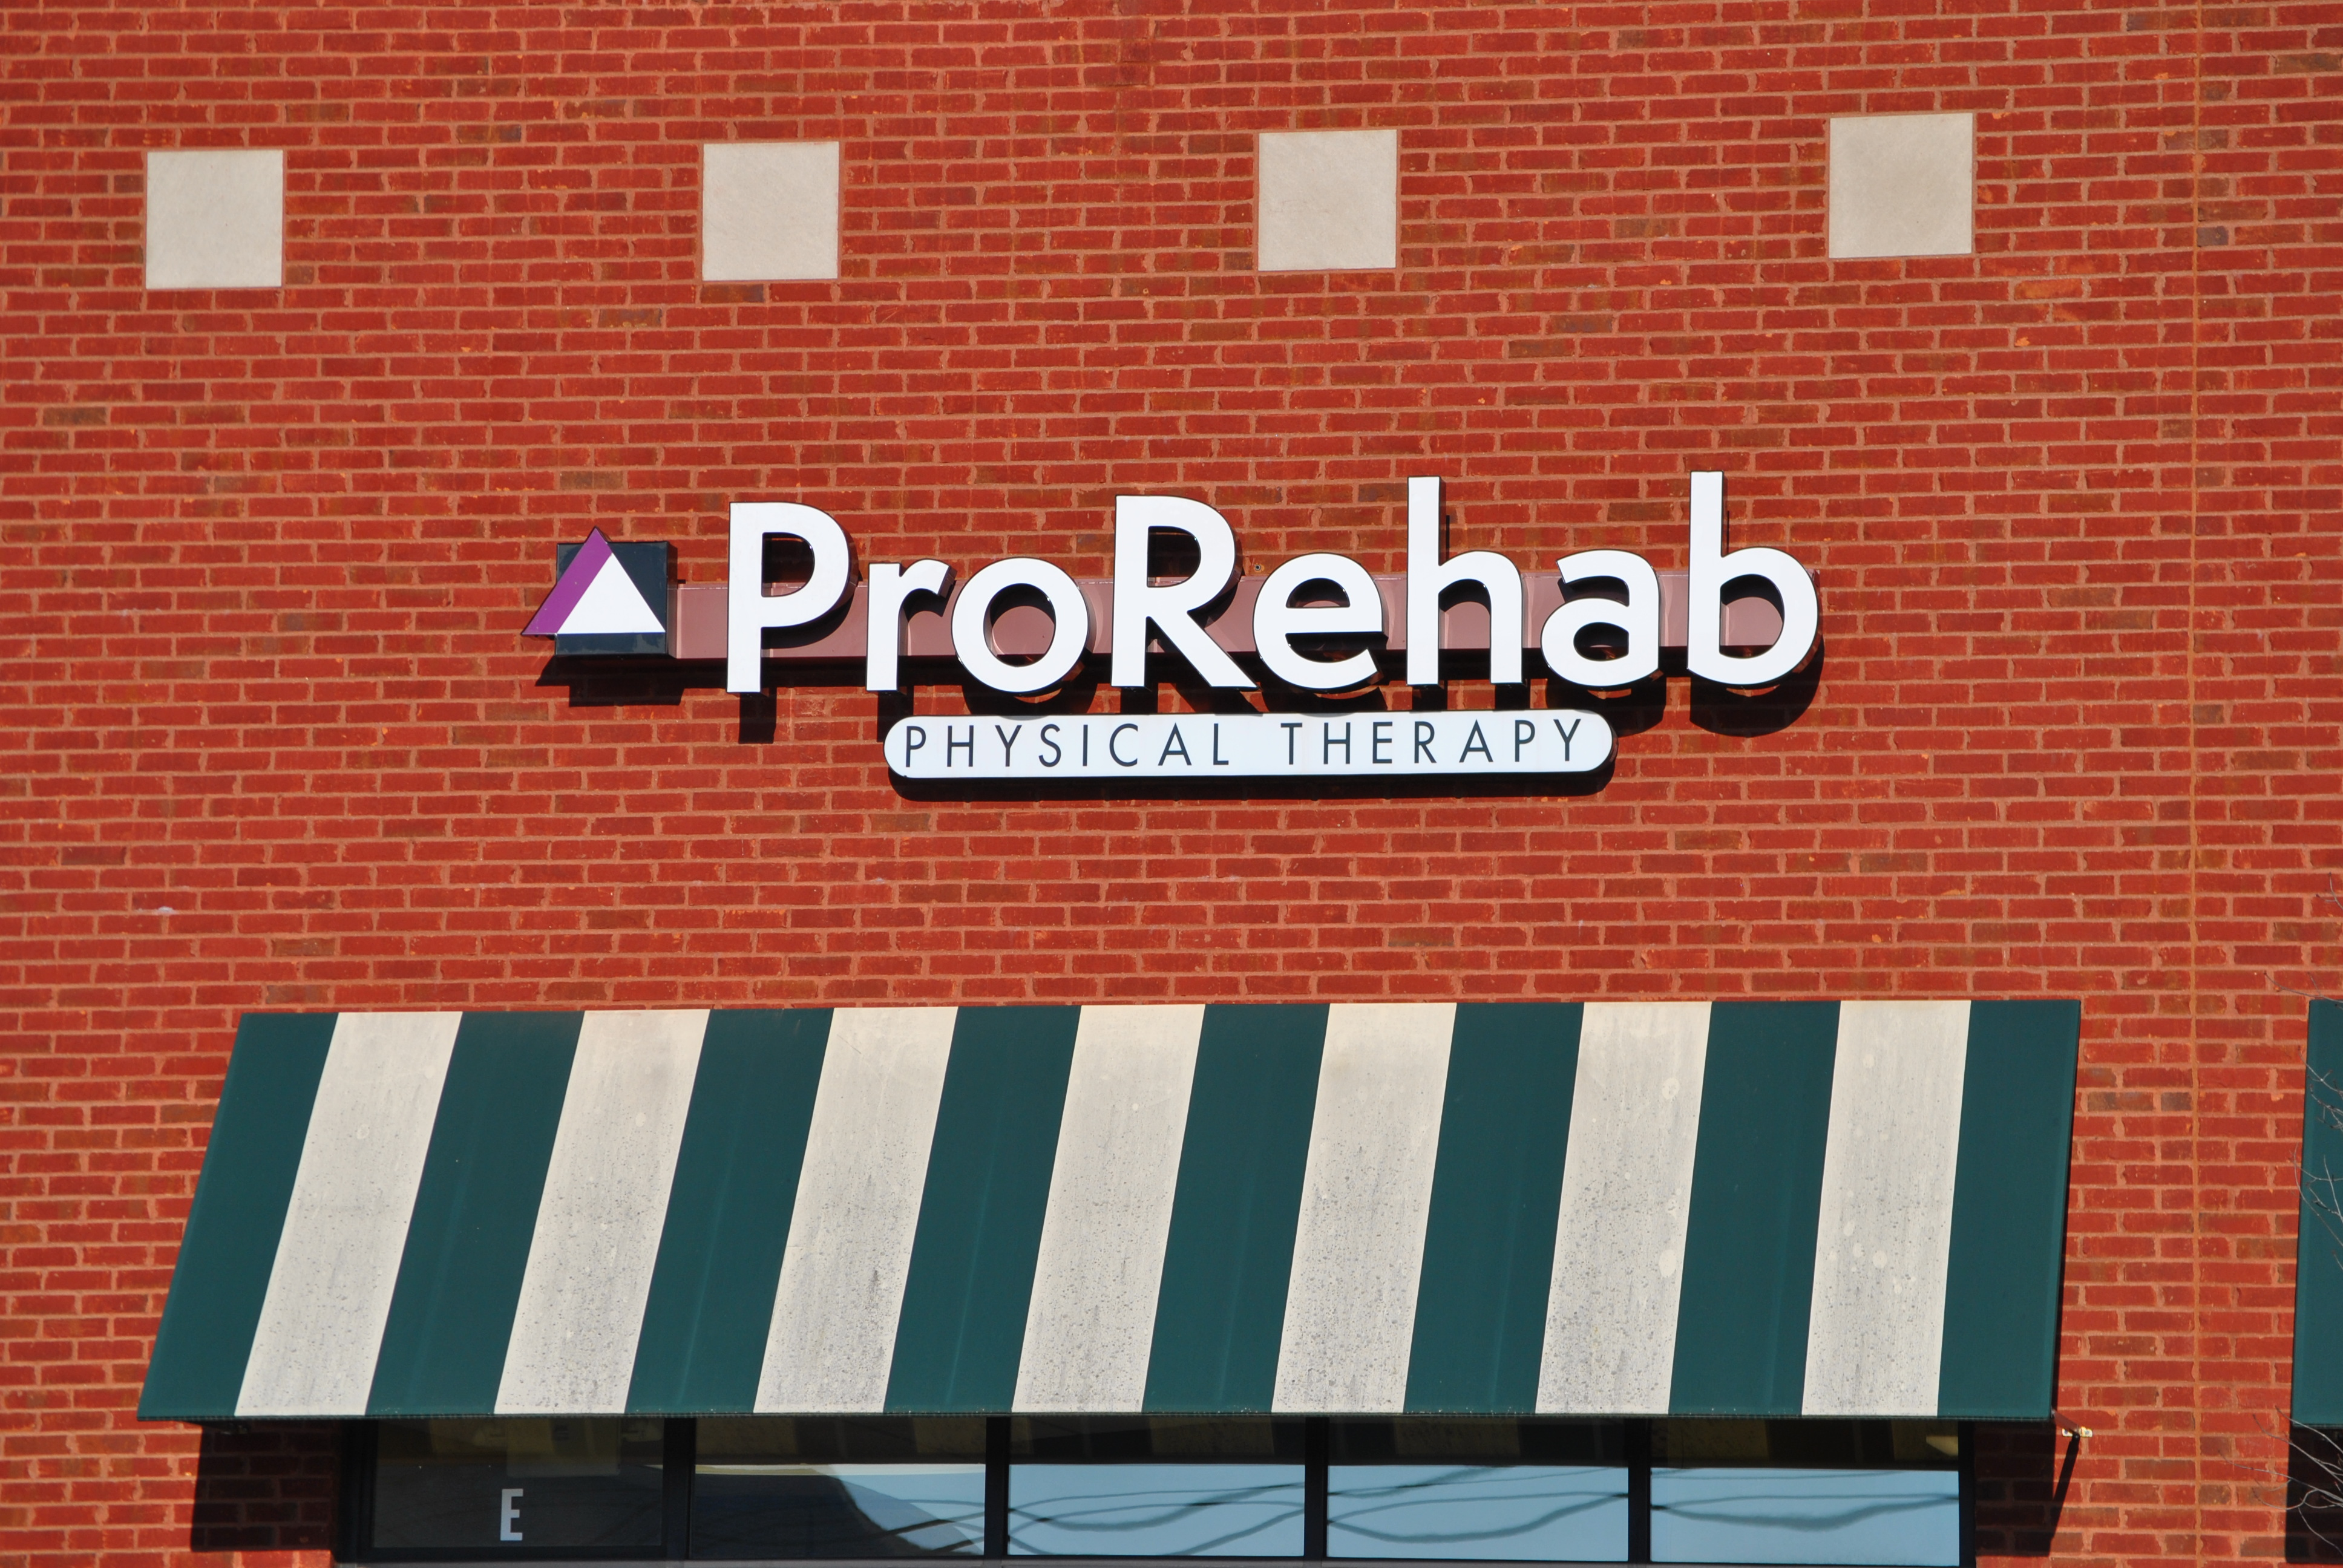 ProRehab Physical Therapy image 1